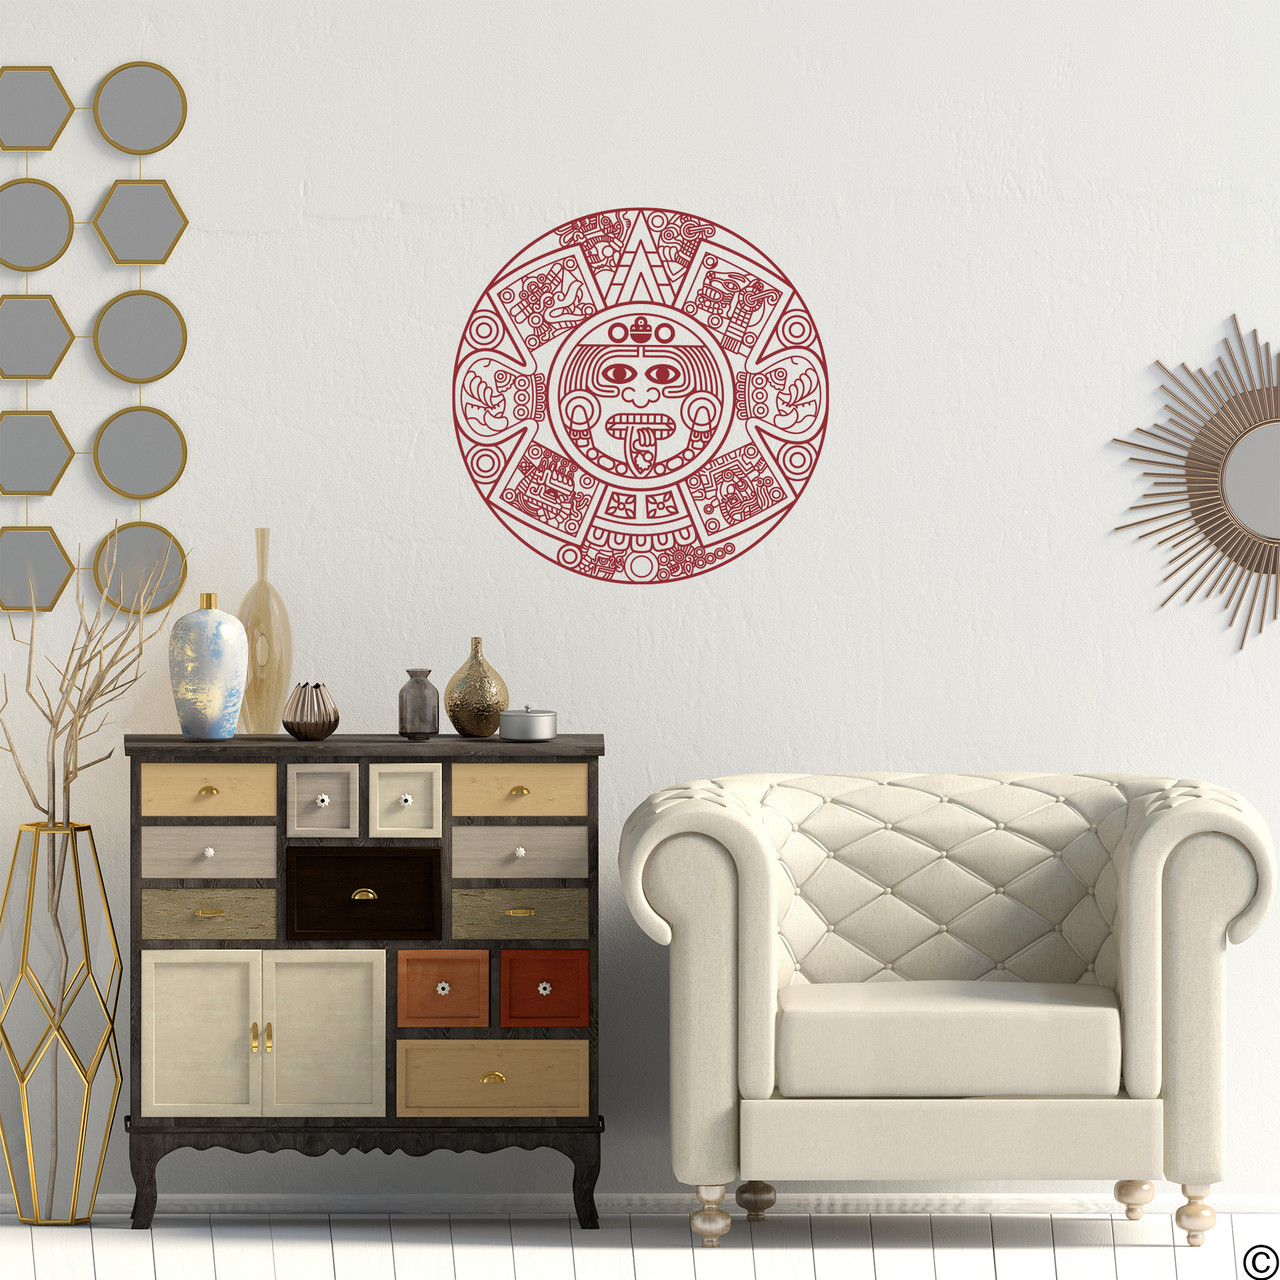 The Aztec Calendar wall decal in dark red vinyl color.